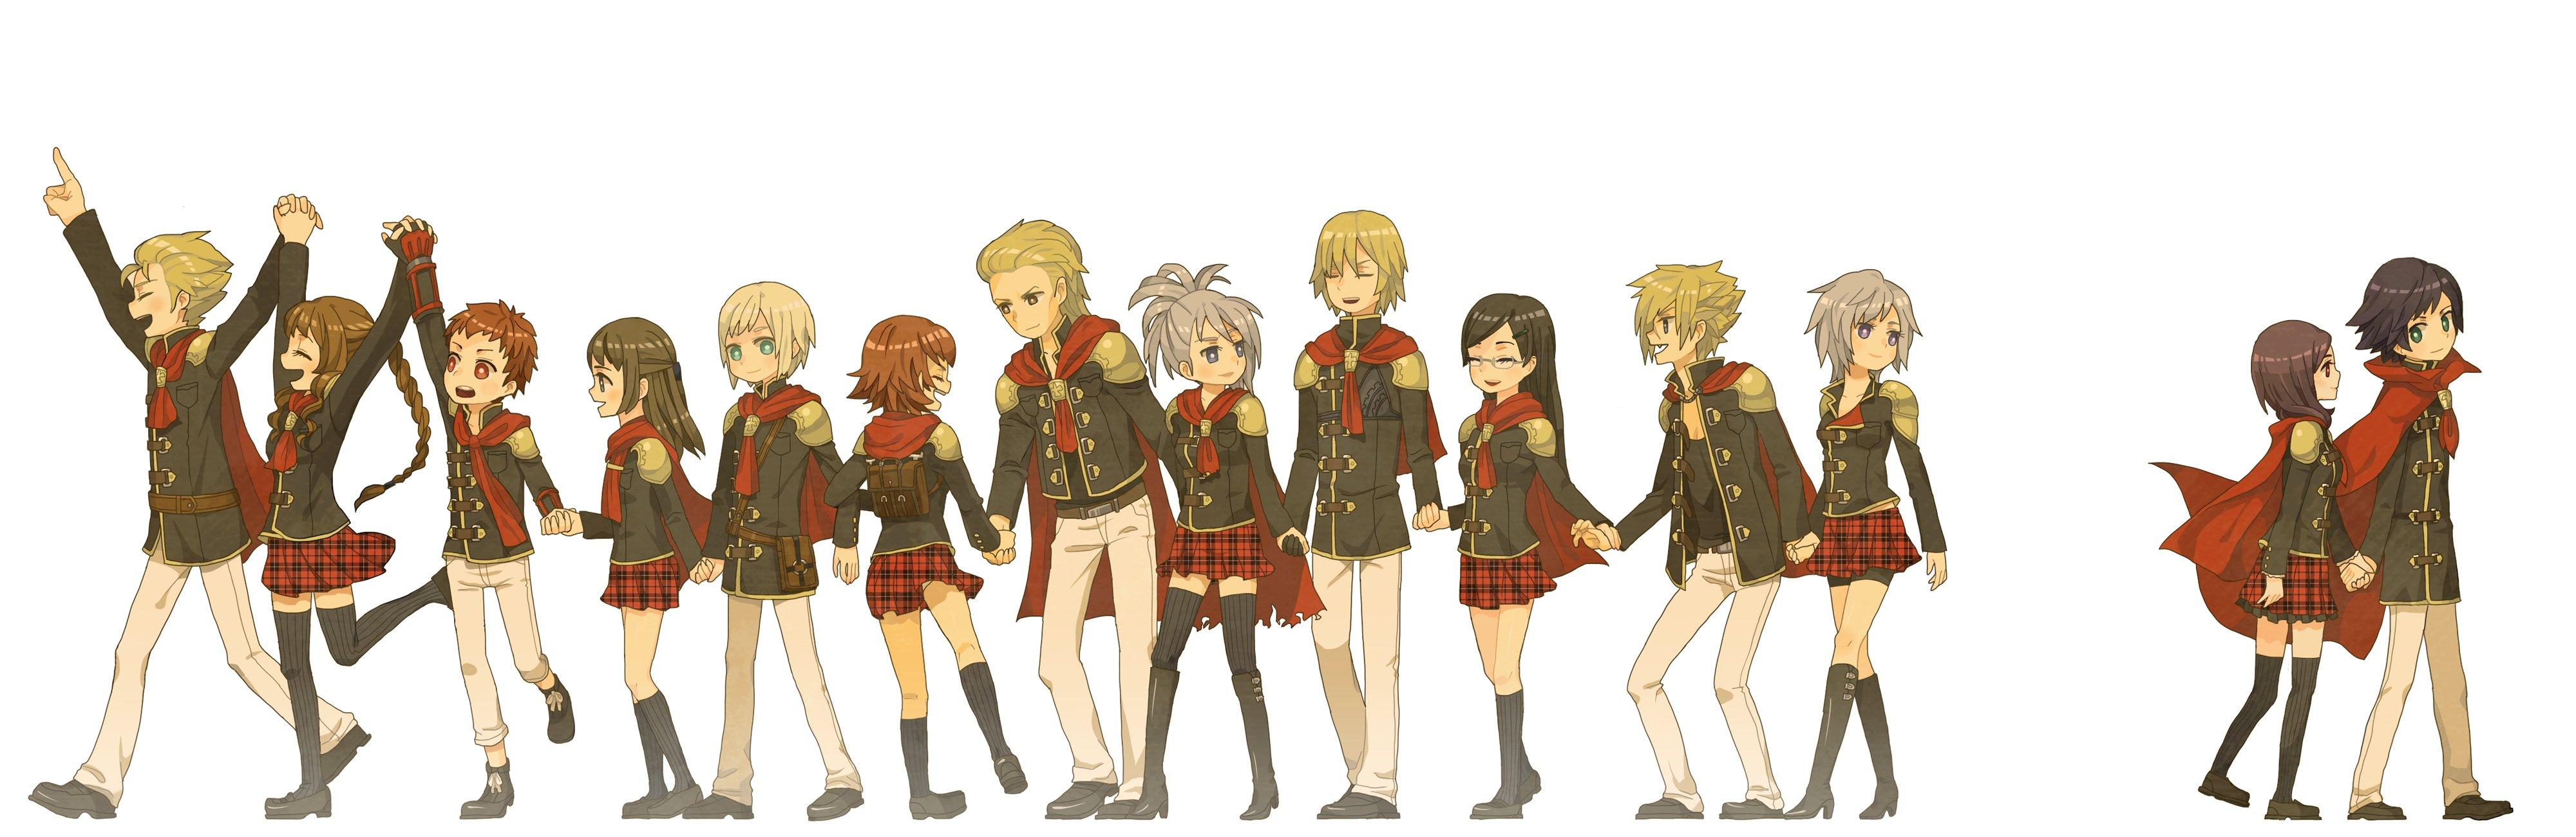 Final Fantasy Type 0 Action Rpg Adventure Fighting 1fftype0 Tps